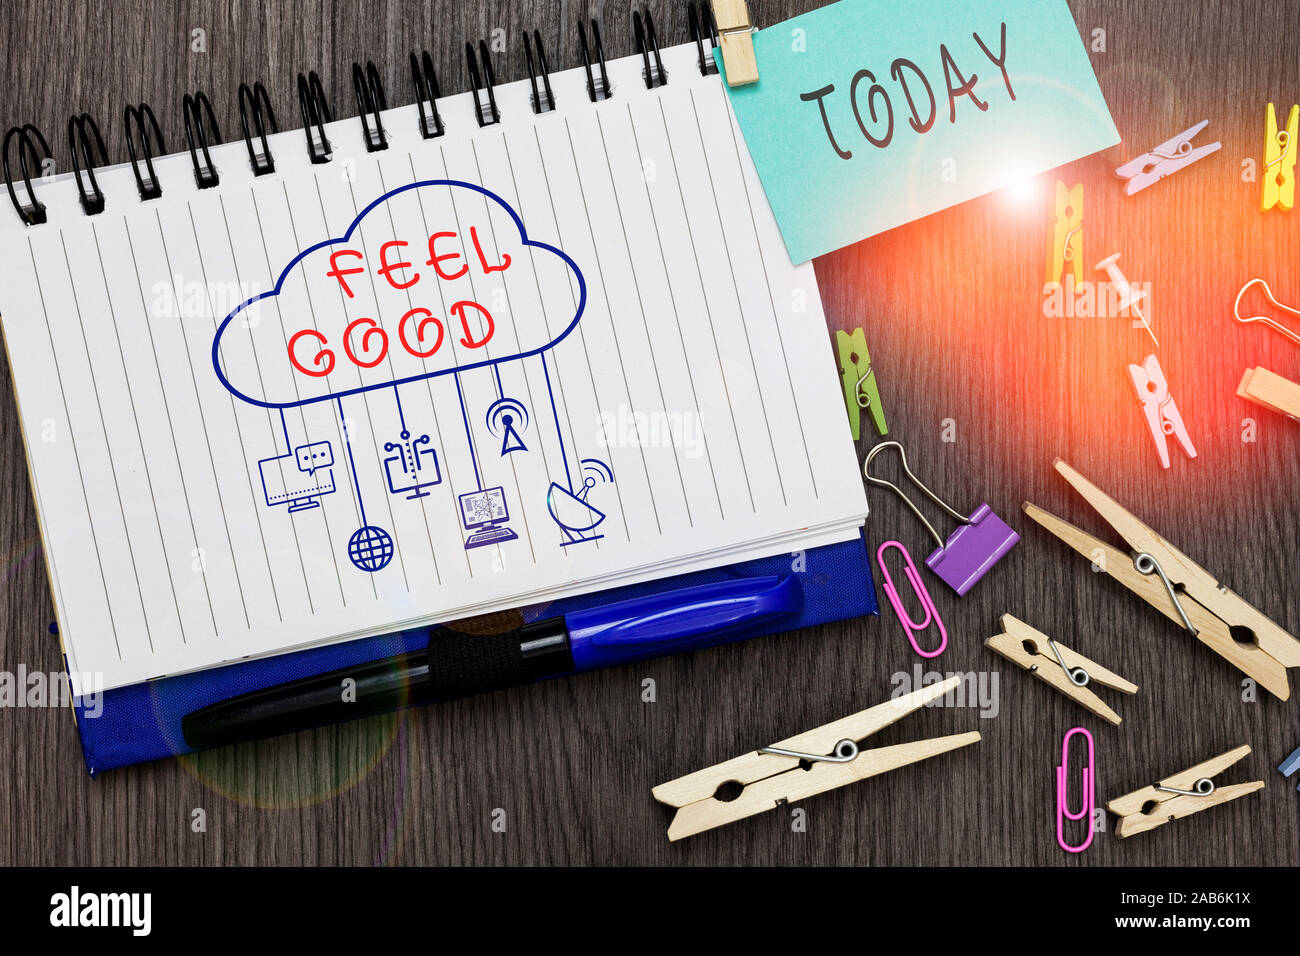 Text sign showing Feel Good. Business photo text relating to or promoting an often specious sense of satisfaction Stock Photo